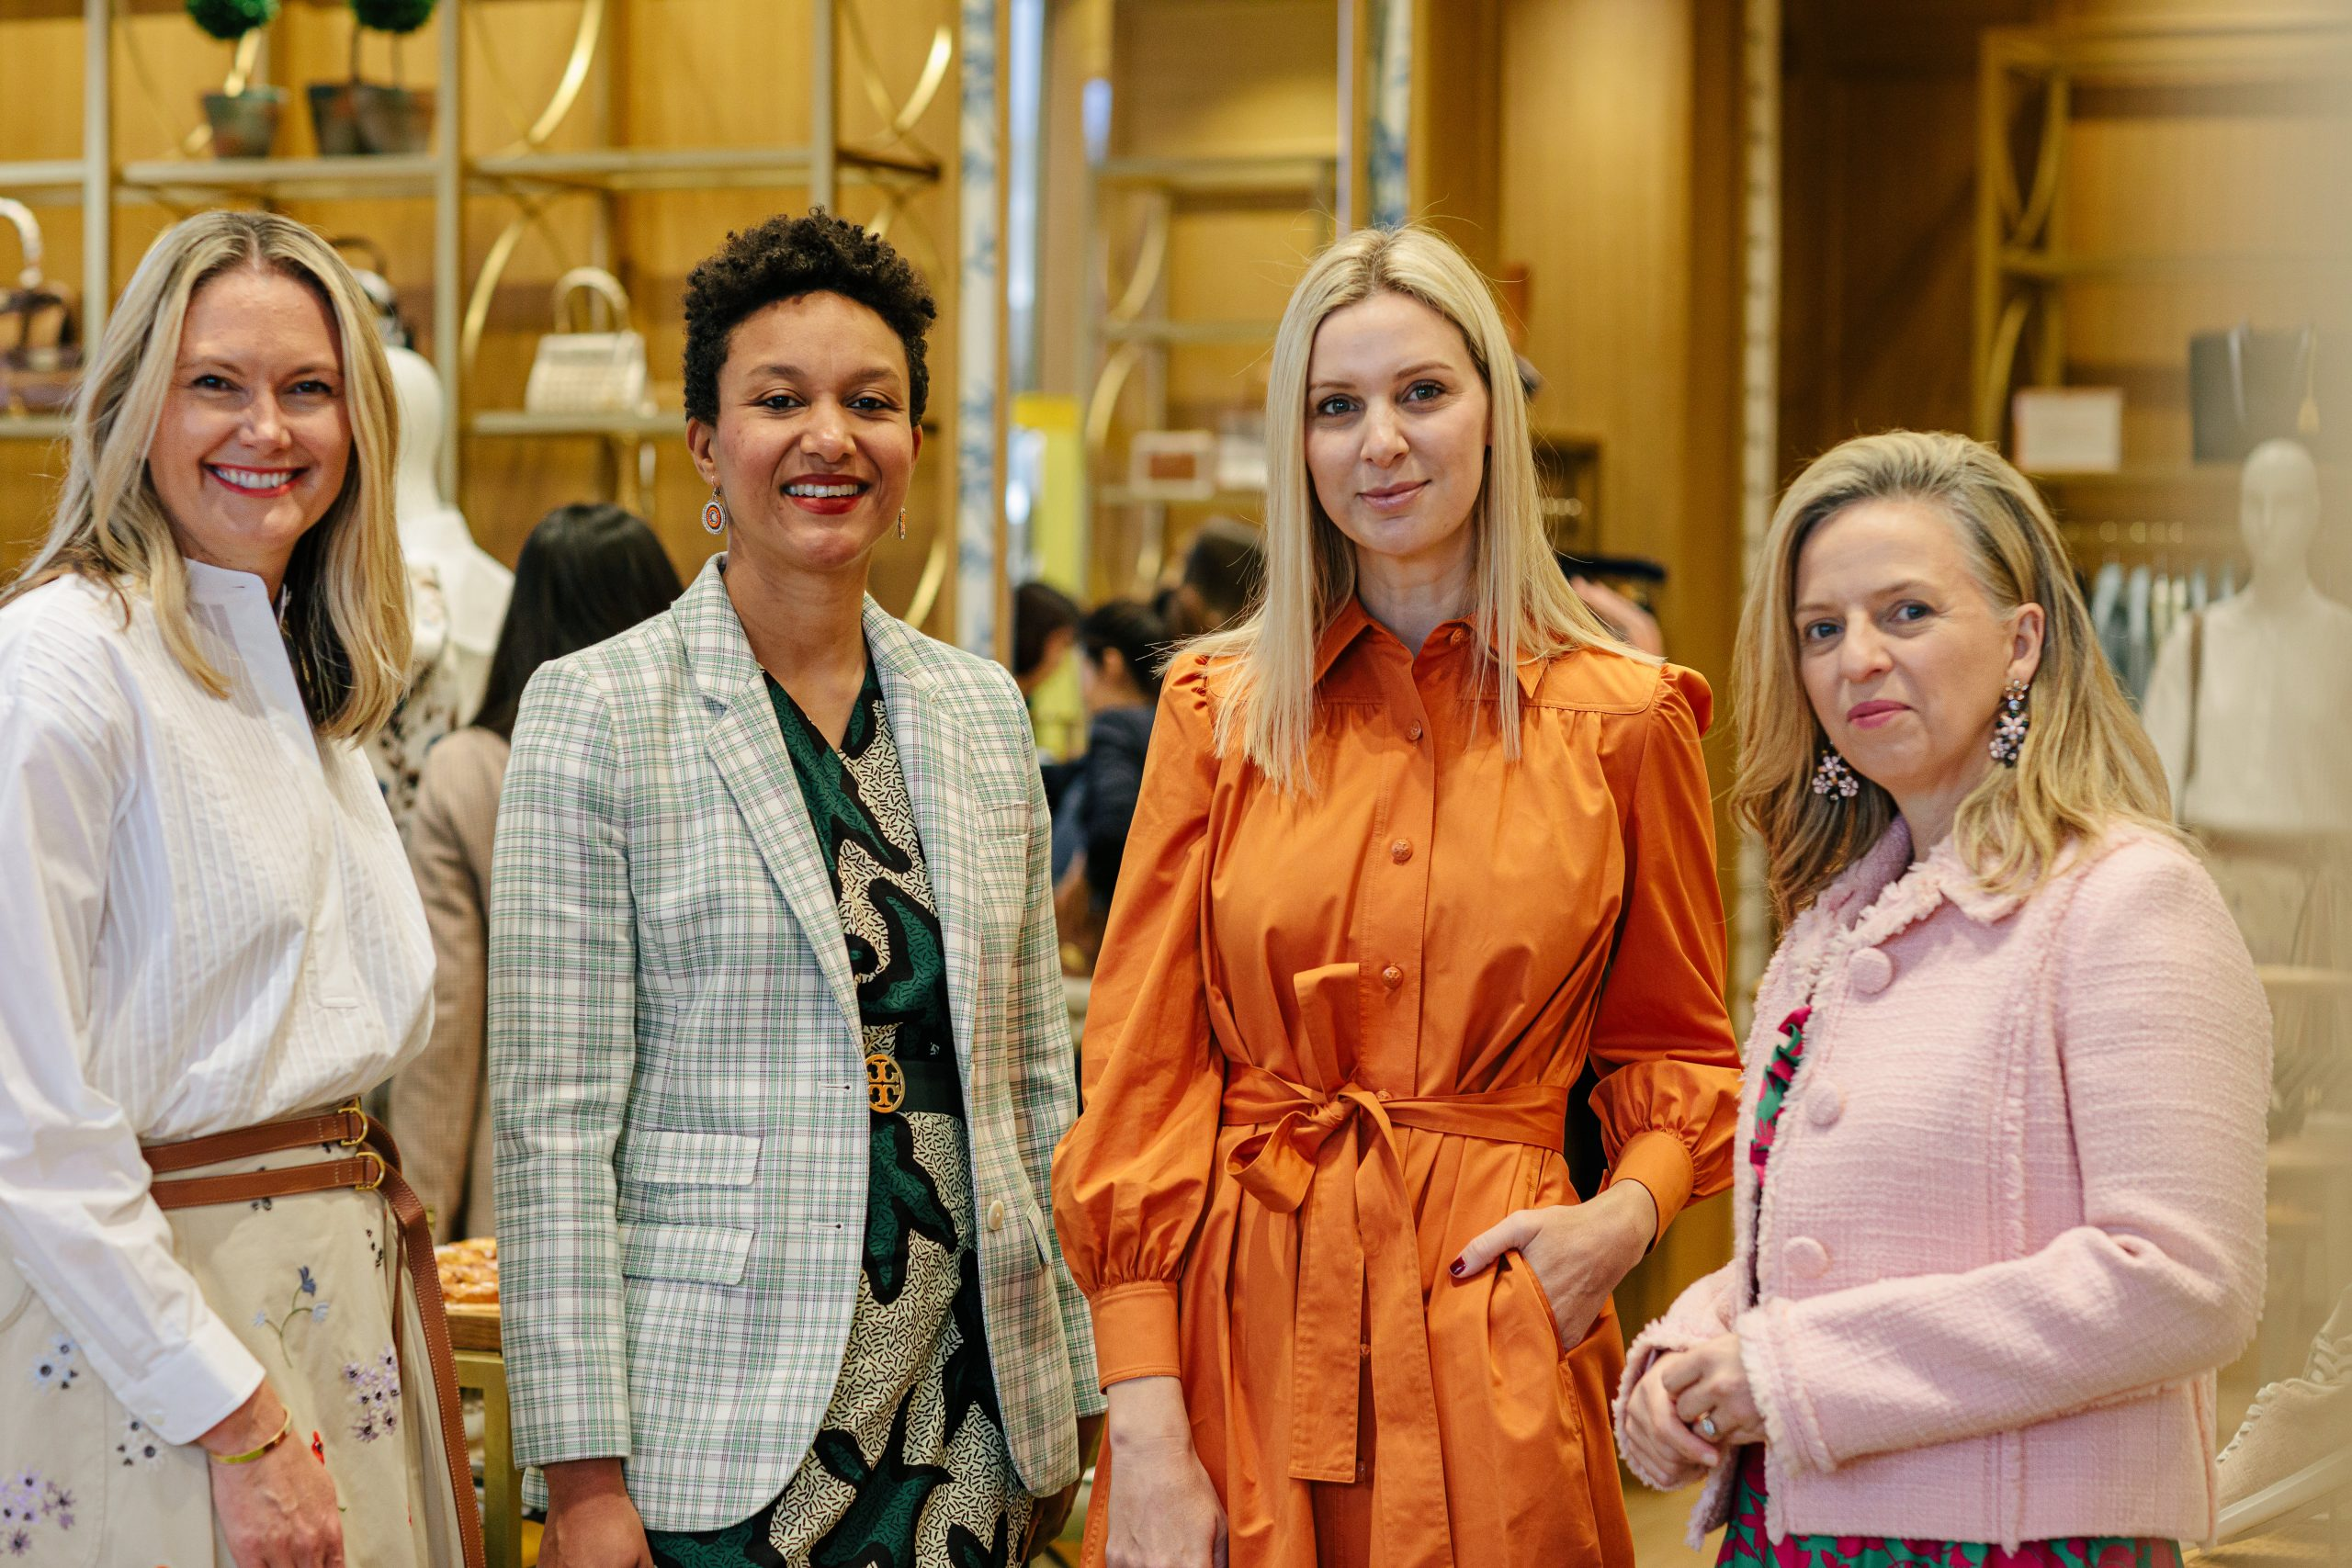 Come Behind the Scenes at our First IRL Event in Over a Year, at Tory Burch Chadstone